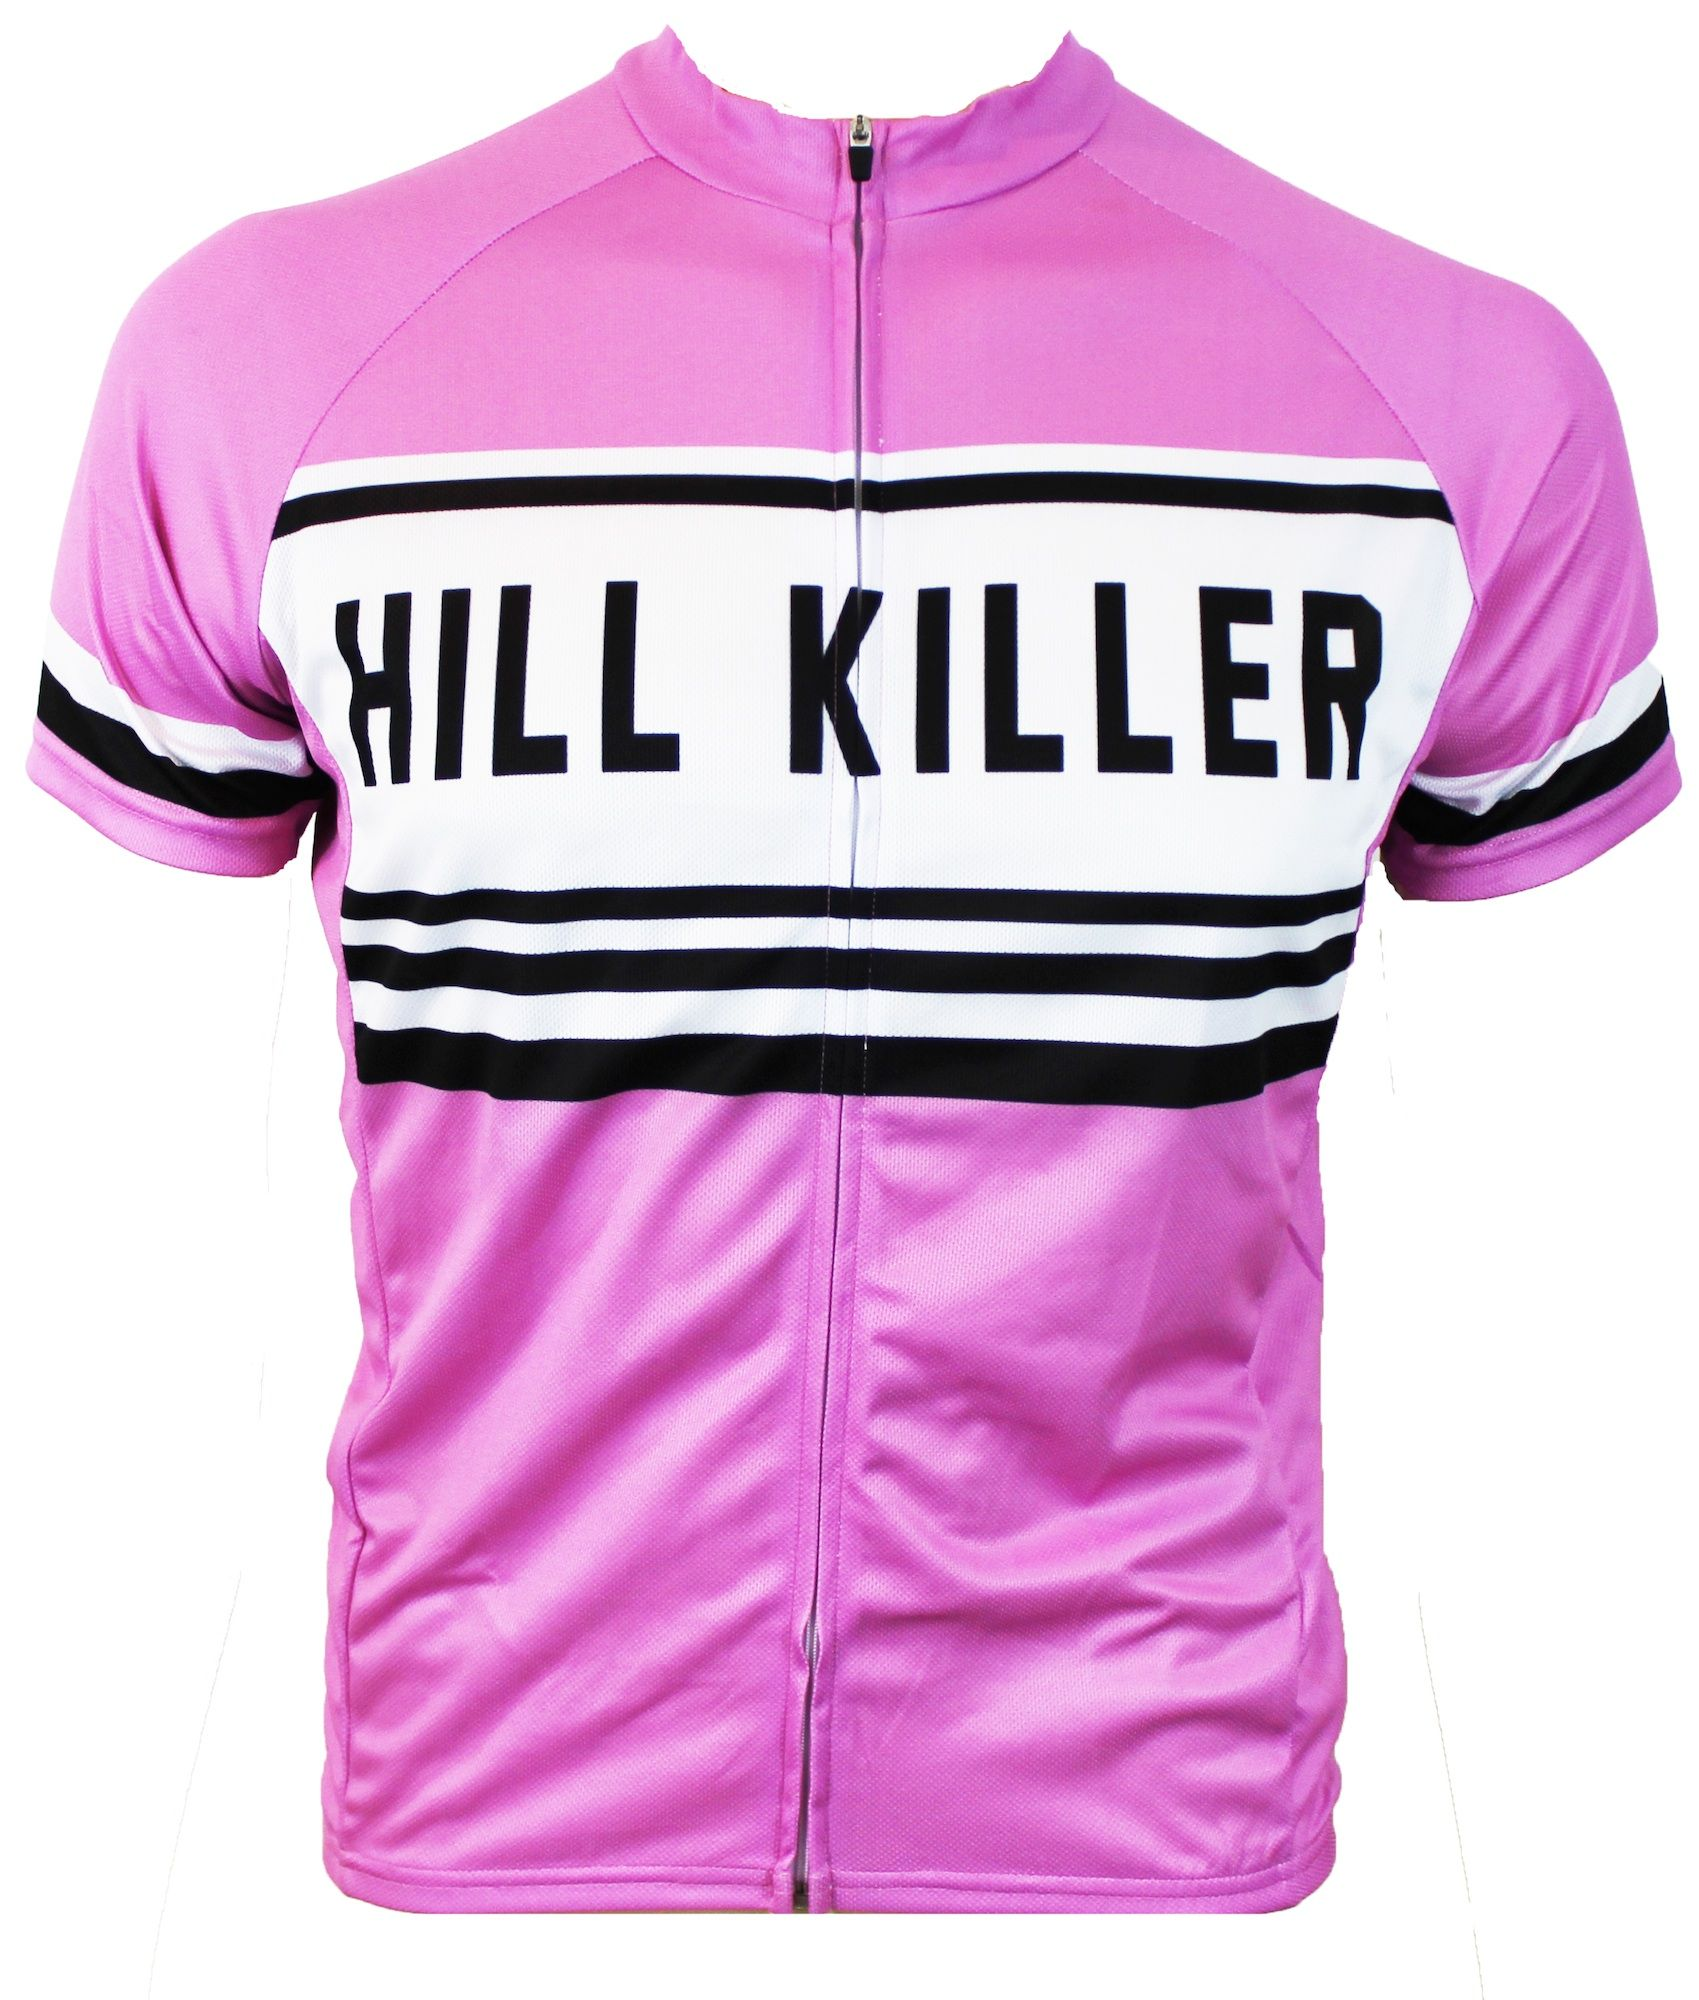 Real Men wears Pink Cycling Jersey - Hill Killer  434c02236